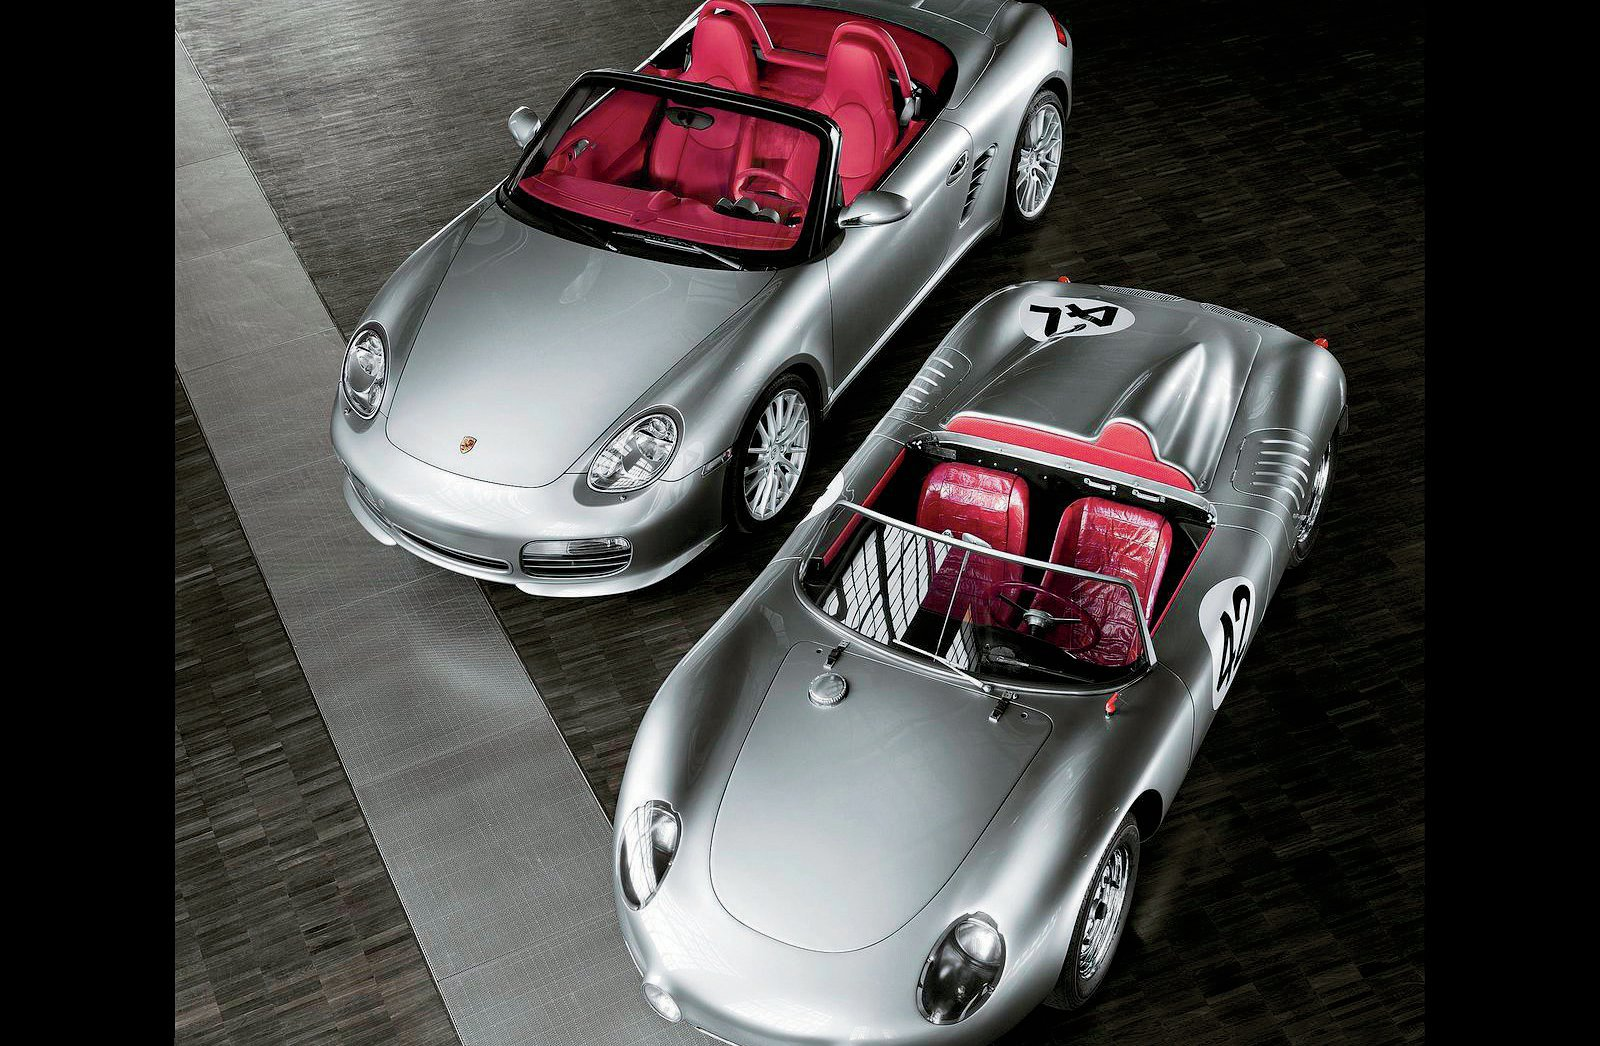 The original Porsche 718 was built between 1957 and 1962. Like its progenitor, the new 718 is a racy, lightweight roadster. The original 718 is shown here with the Boxster RS60 Spyder, of which 1960 were built as a 2008 model.